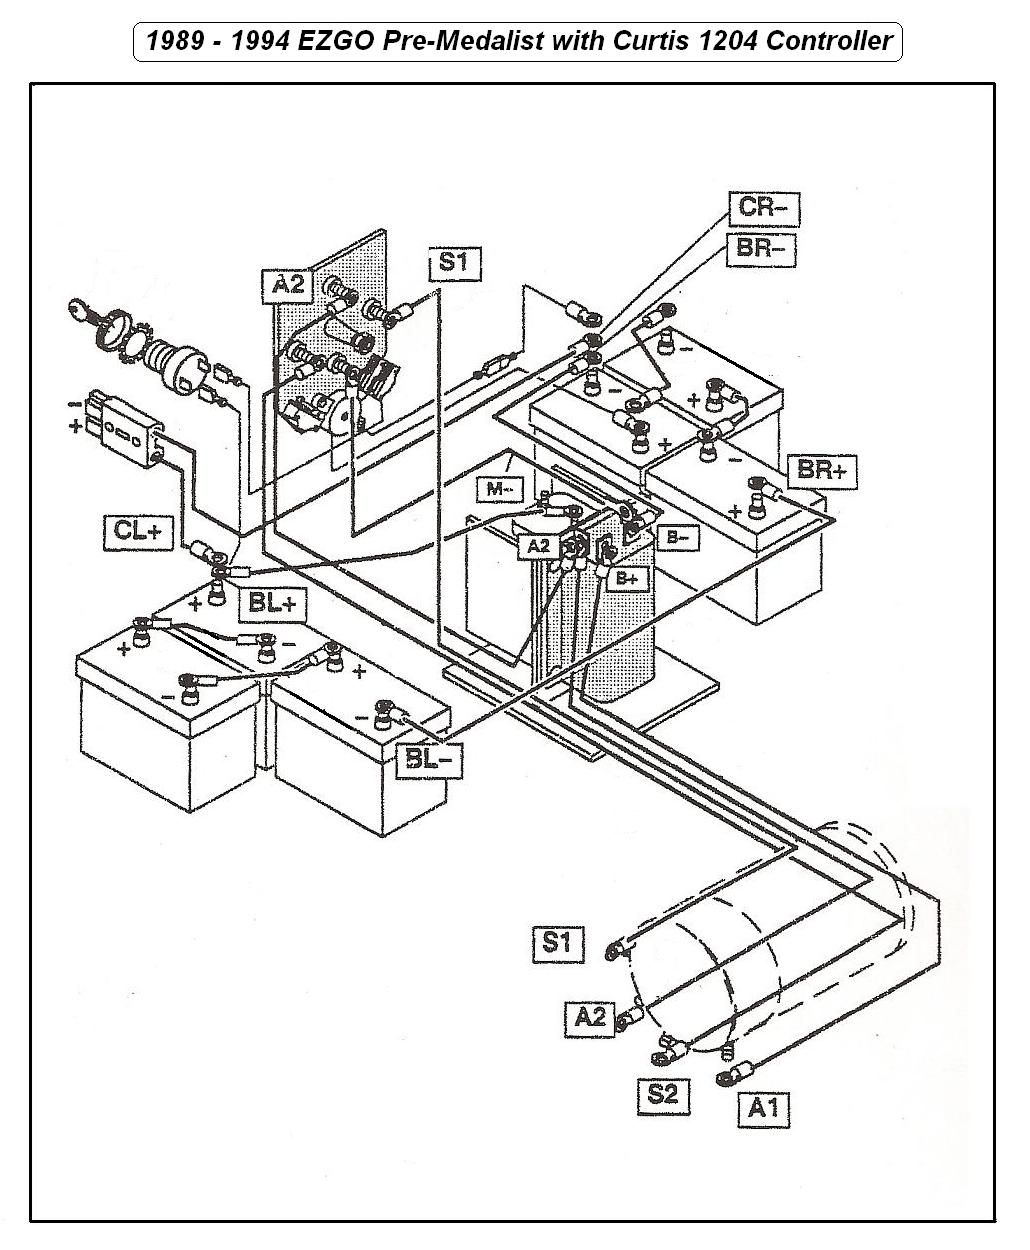 ezgo solenoid wiring diagram ezgo wire diagram